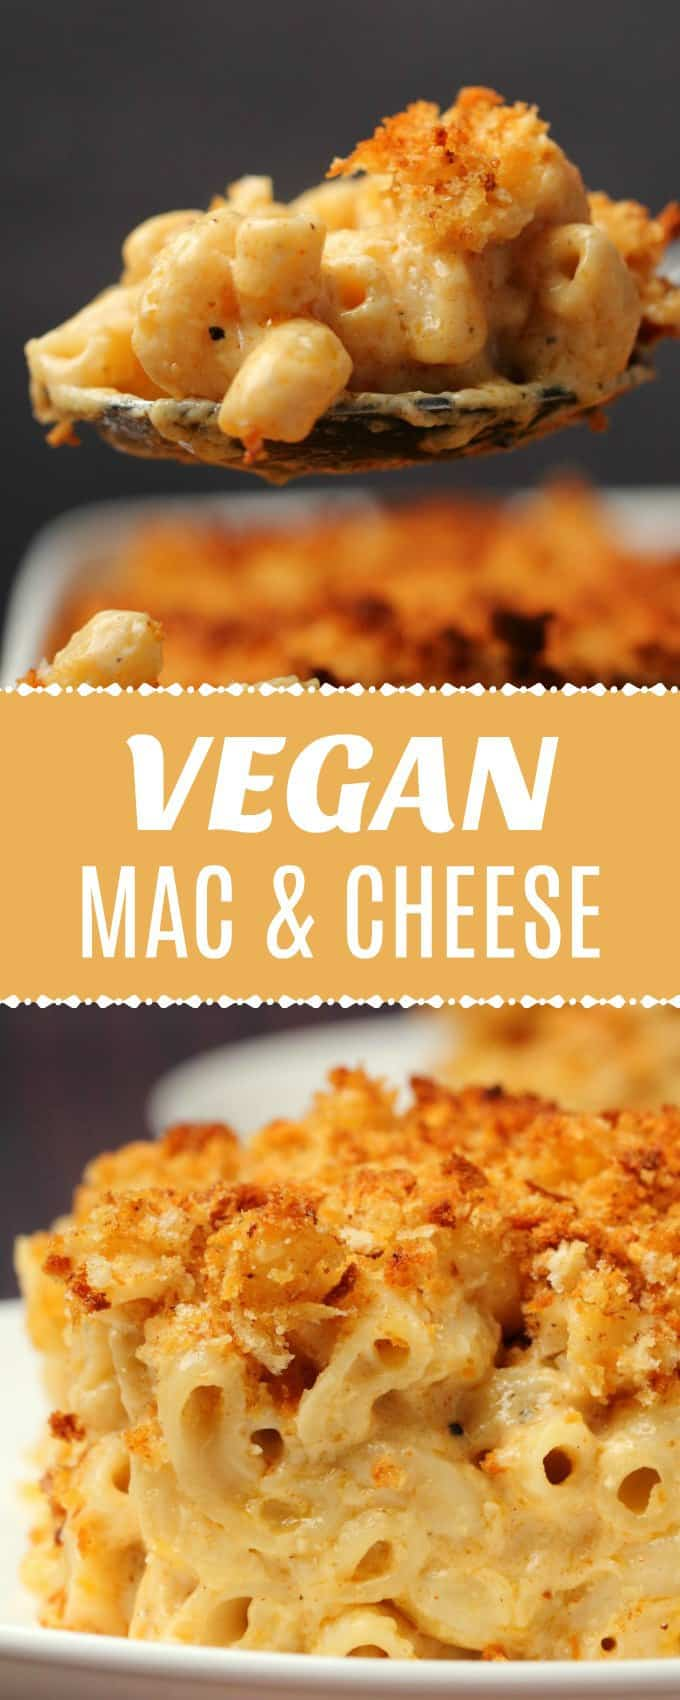 This classic vegan mac and cheese is ultra cheesy, saucy and creamy. Topped with breadcrumbs and baked until golden brown and crispy. Seriously satisfying.#vegan #dairyfree | lovingitvegan.com